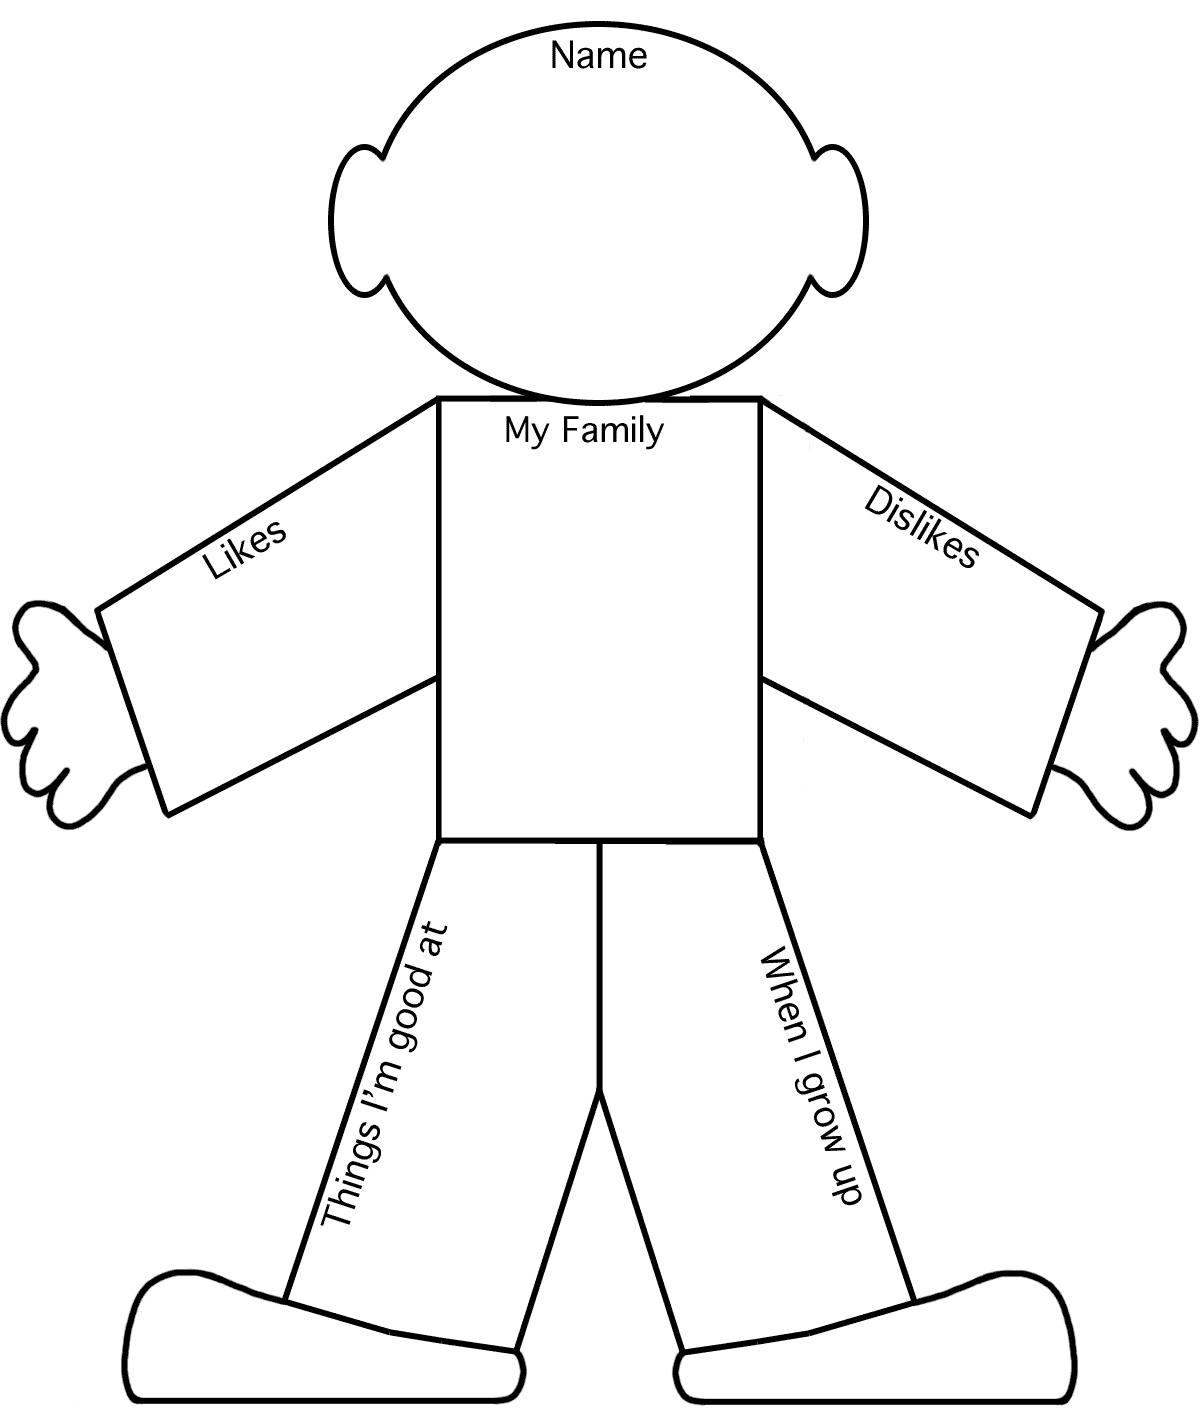 All About Me Graphic Organizer I Have Also Used This One With Character Stu S And To Create